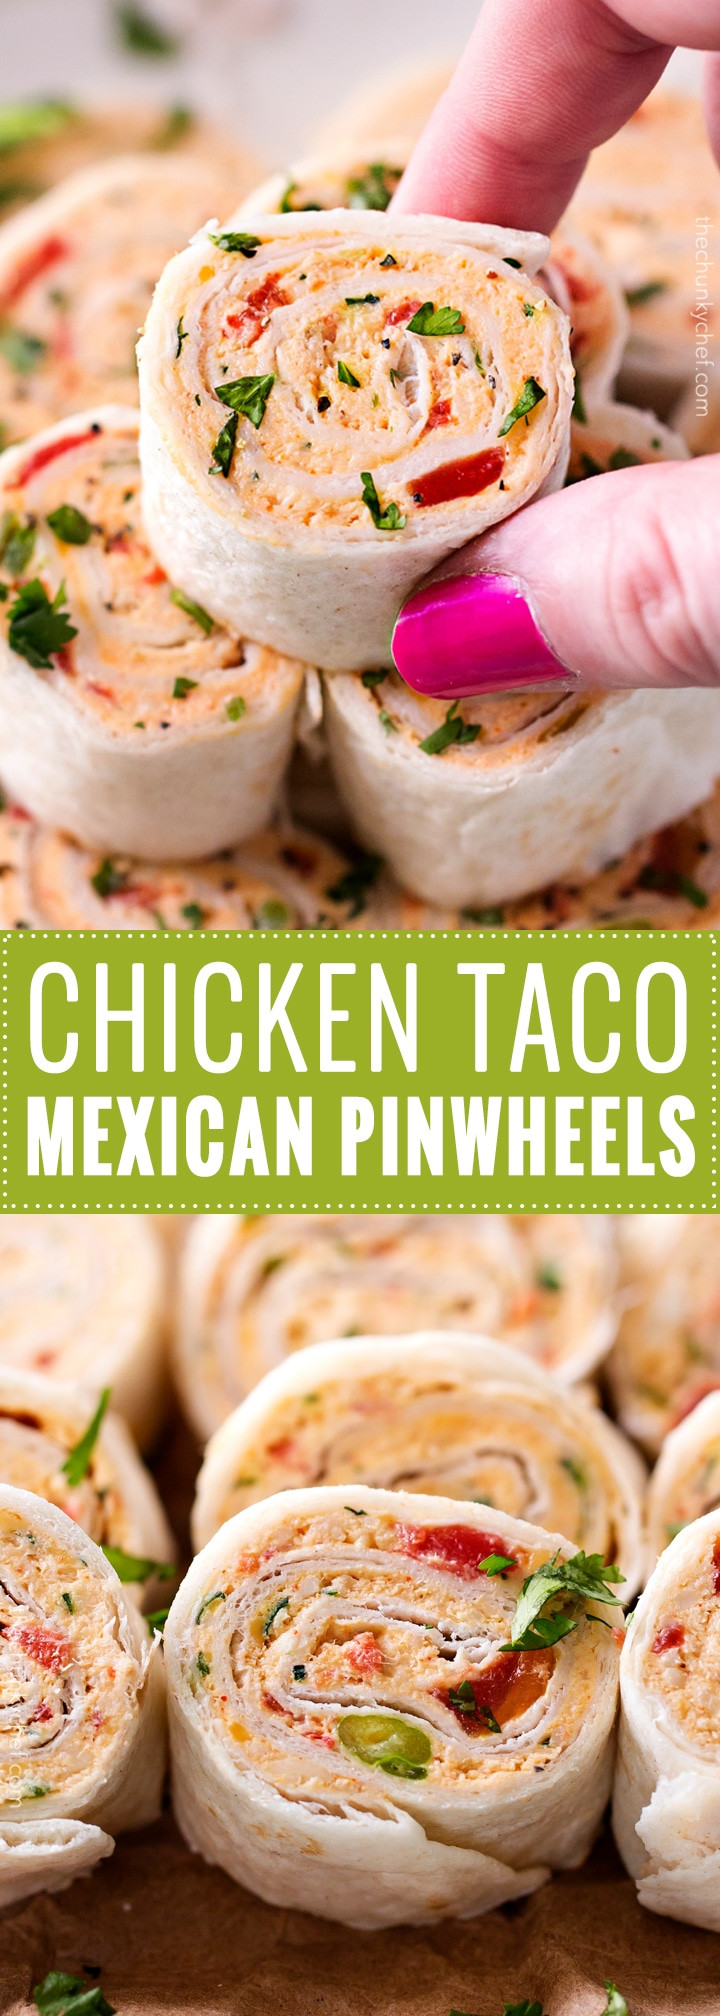 Mexican Food Appetizers  Chicken Taco Mexican Pinwheels The Chunky Chef